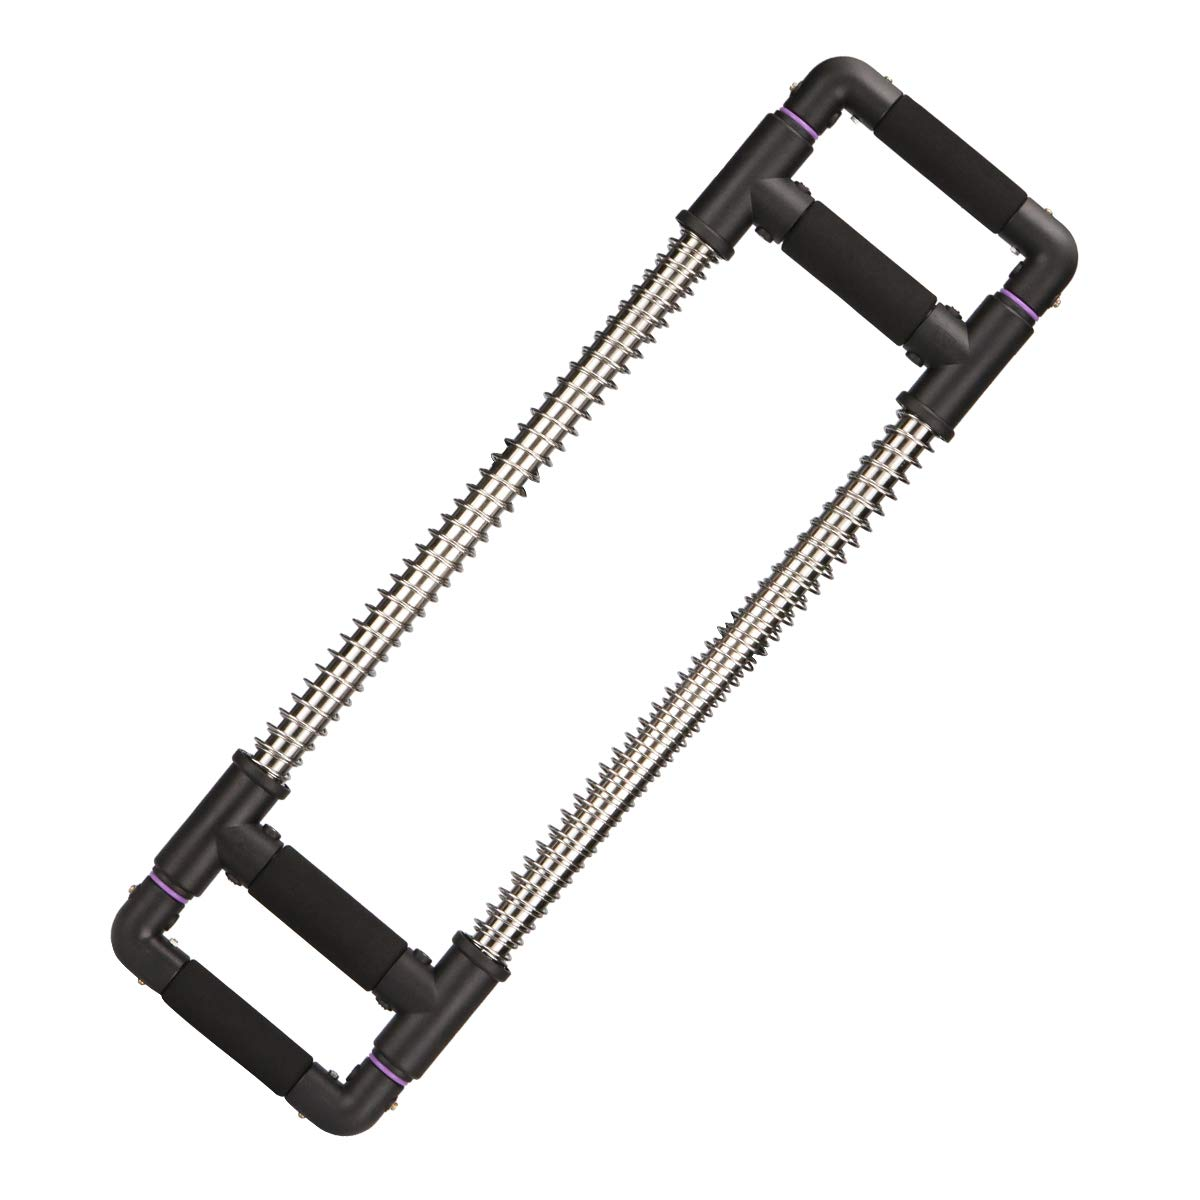 GoFitness Super Push Down Bar - Total Upper Body Workout Equipment, Press Down Machine - Chest Workout, Strength Training, Home Fitness by GoFitness (Image #2)